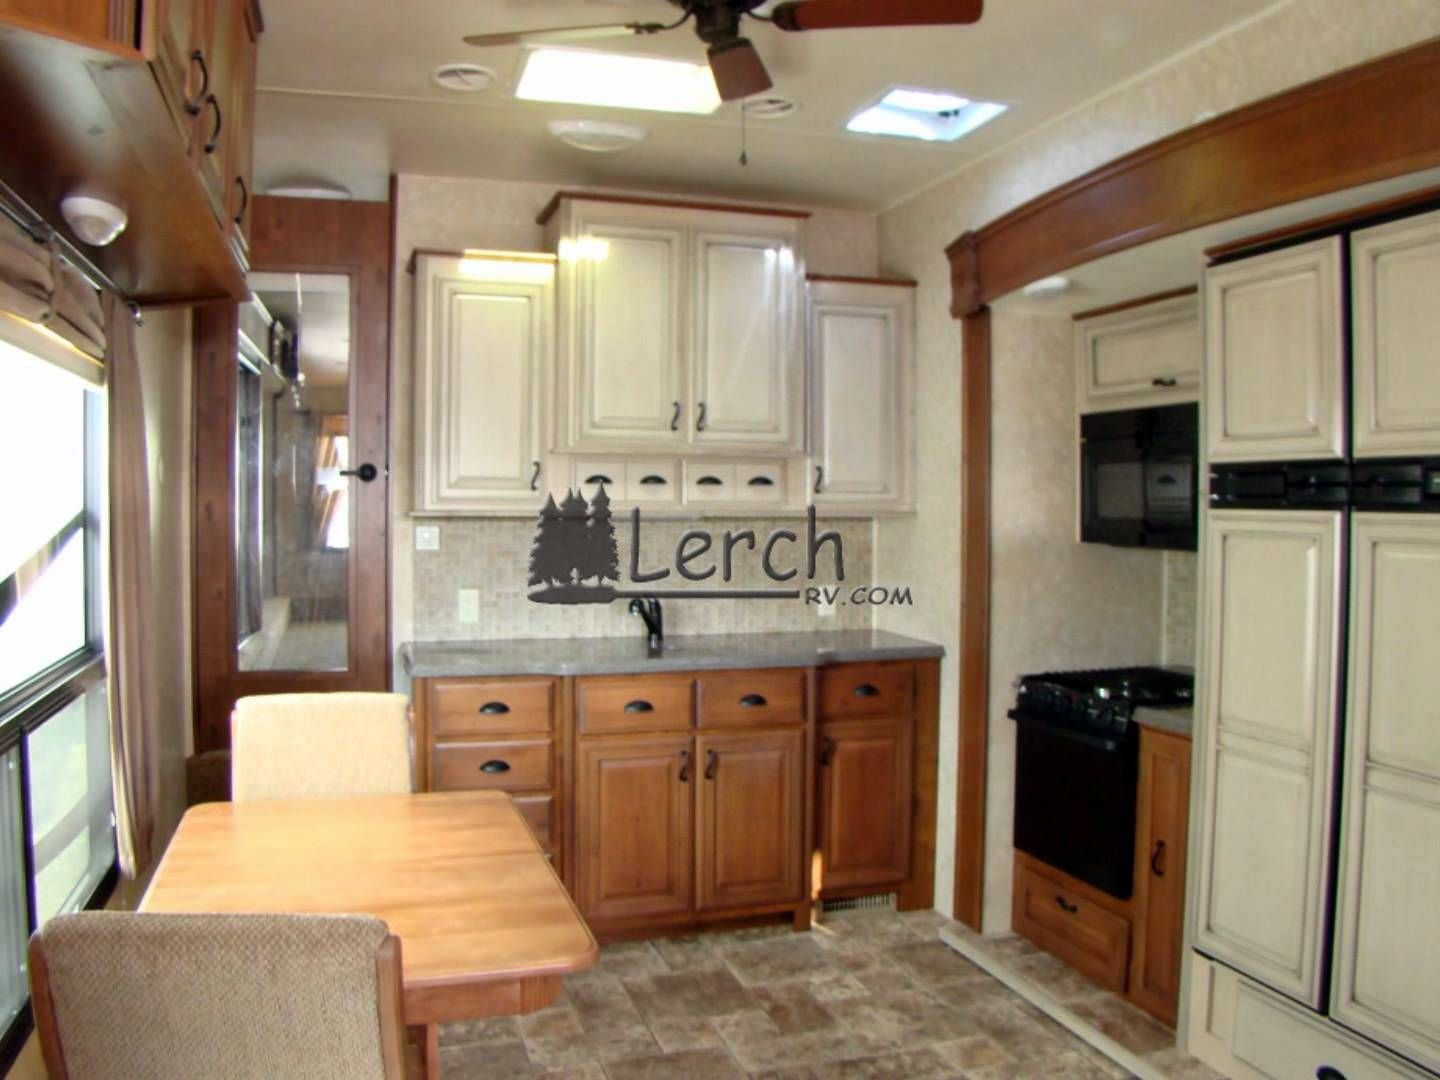 2012 Open Range 386 Flr Front Living Room 5Th Wheellerch Rv Fascinating Fifth Wheel Campers With Front Living Rooms Design Inspiration